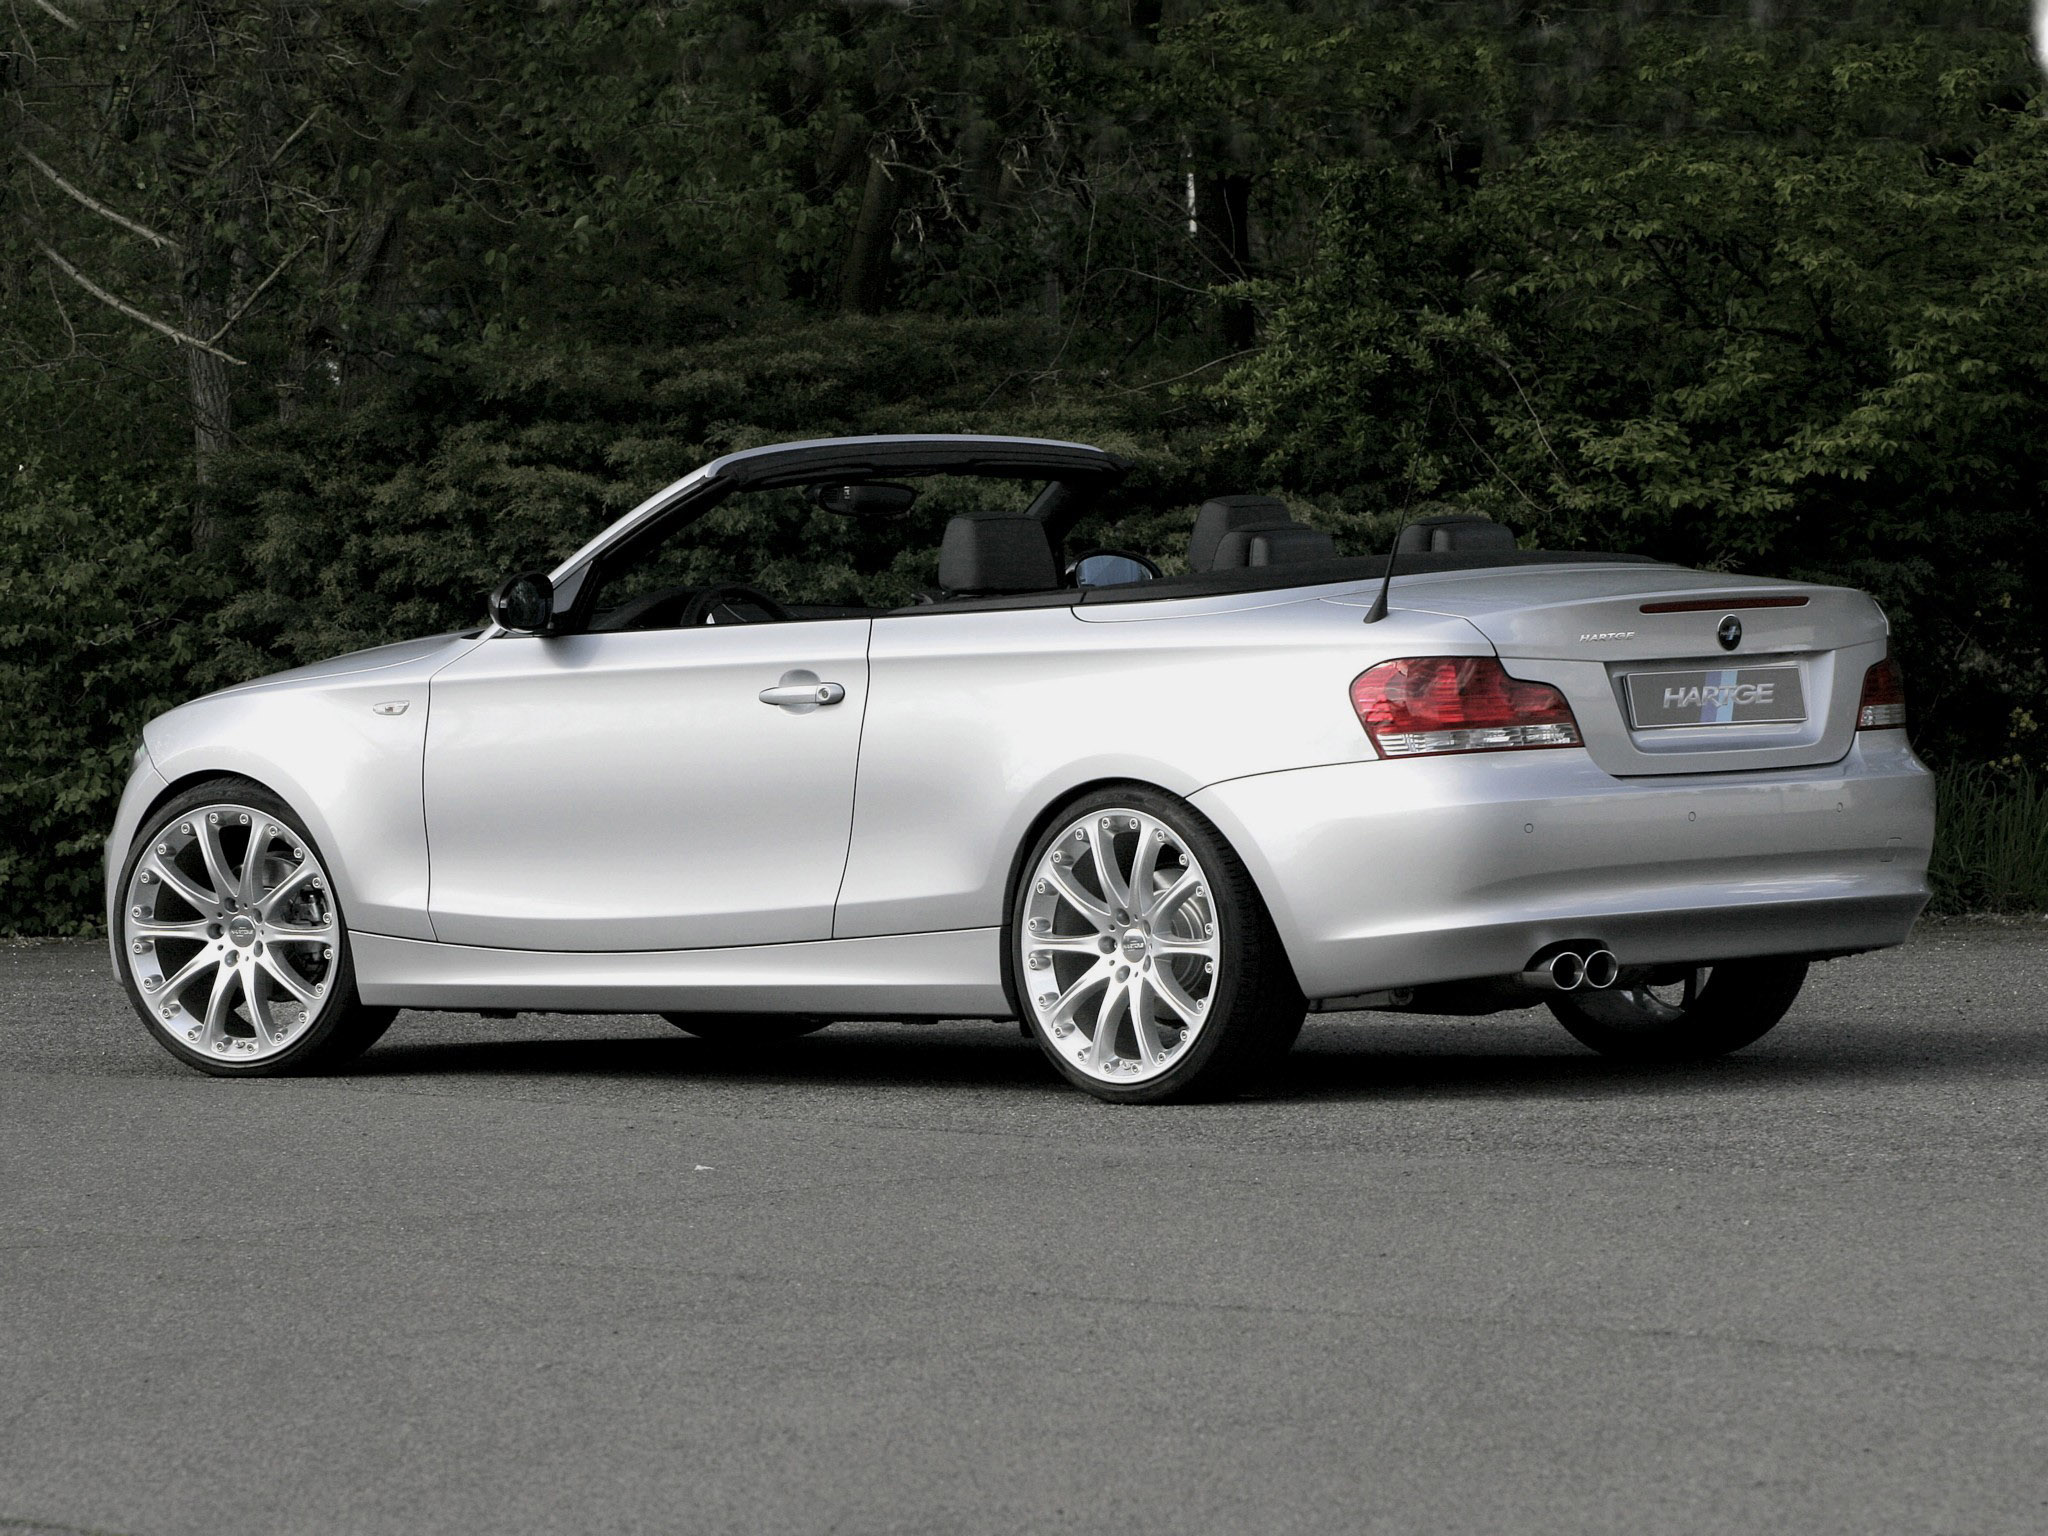 hartge bmw 1 series 135i cabrio e88 2008 hartge bmw 1 series 135i cabrio e88 2008 photo 01 car. Black Bedroom Furniture Sets. Home Design Ideas